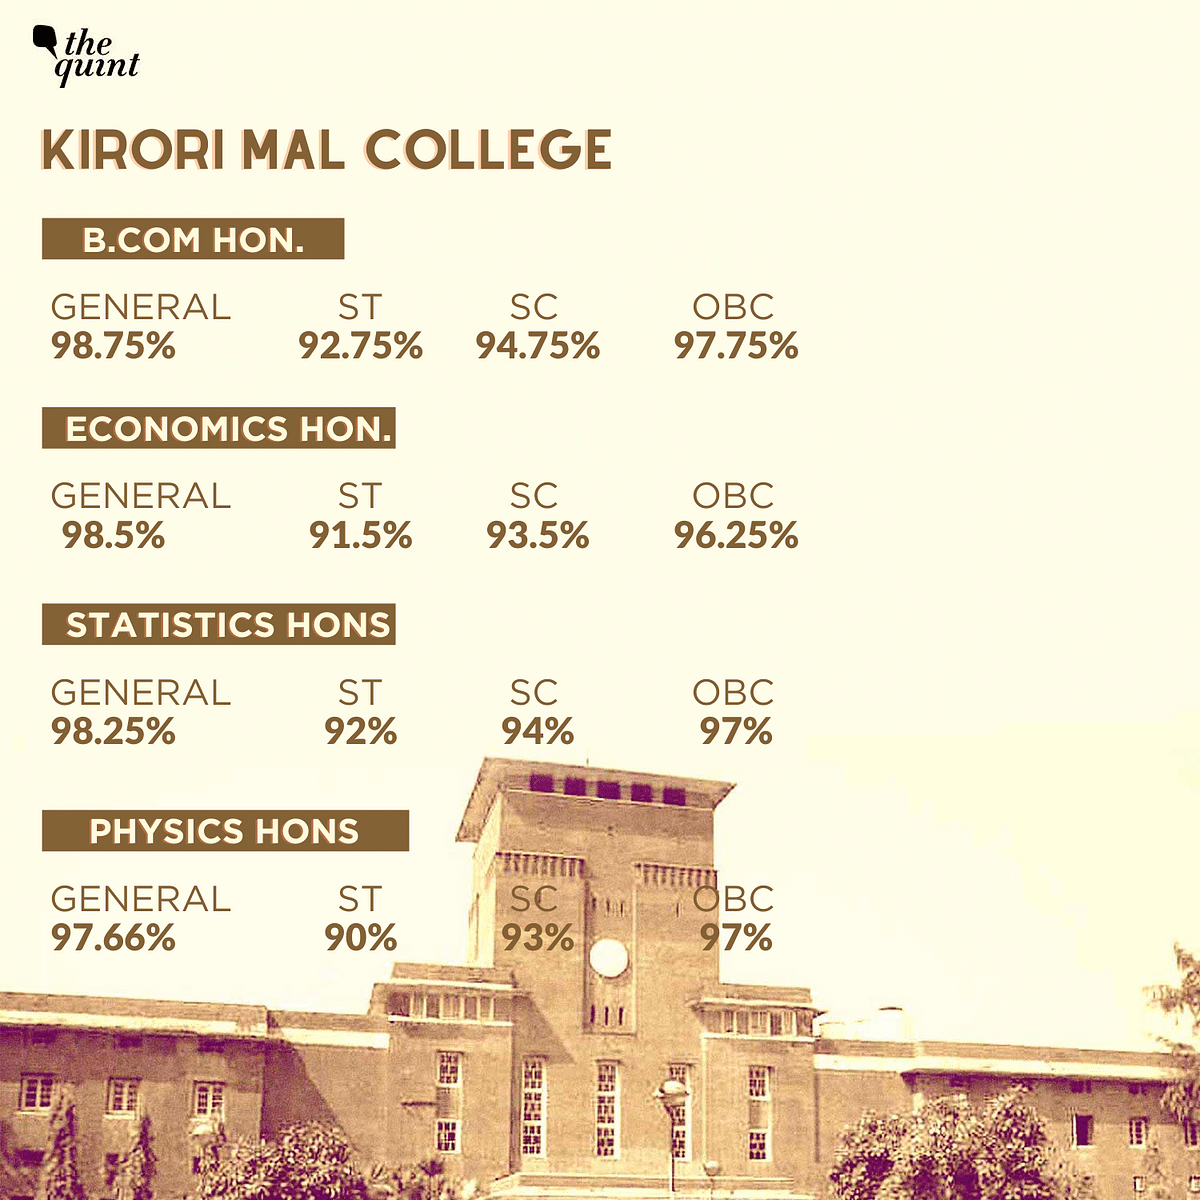 At 100%, LSR Sets Highest Cut-Off in DU First Round; SRCC at 99.5%